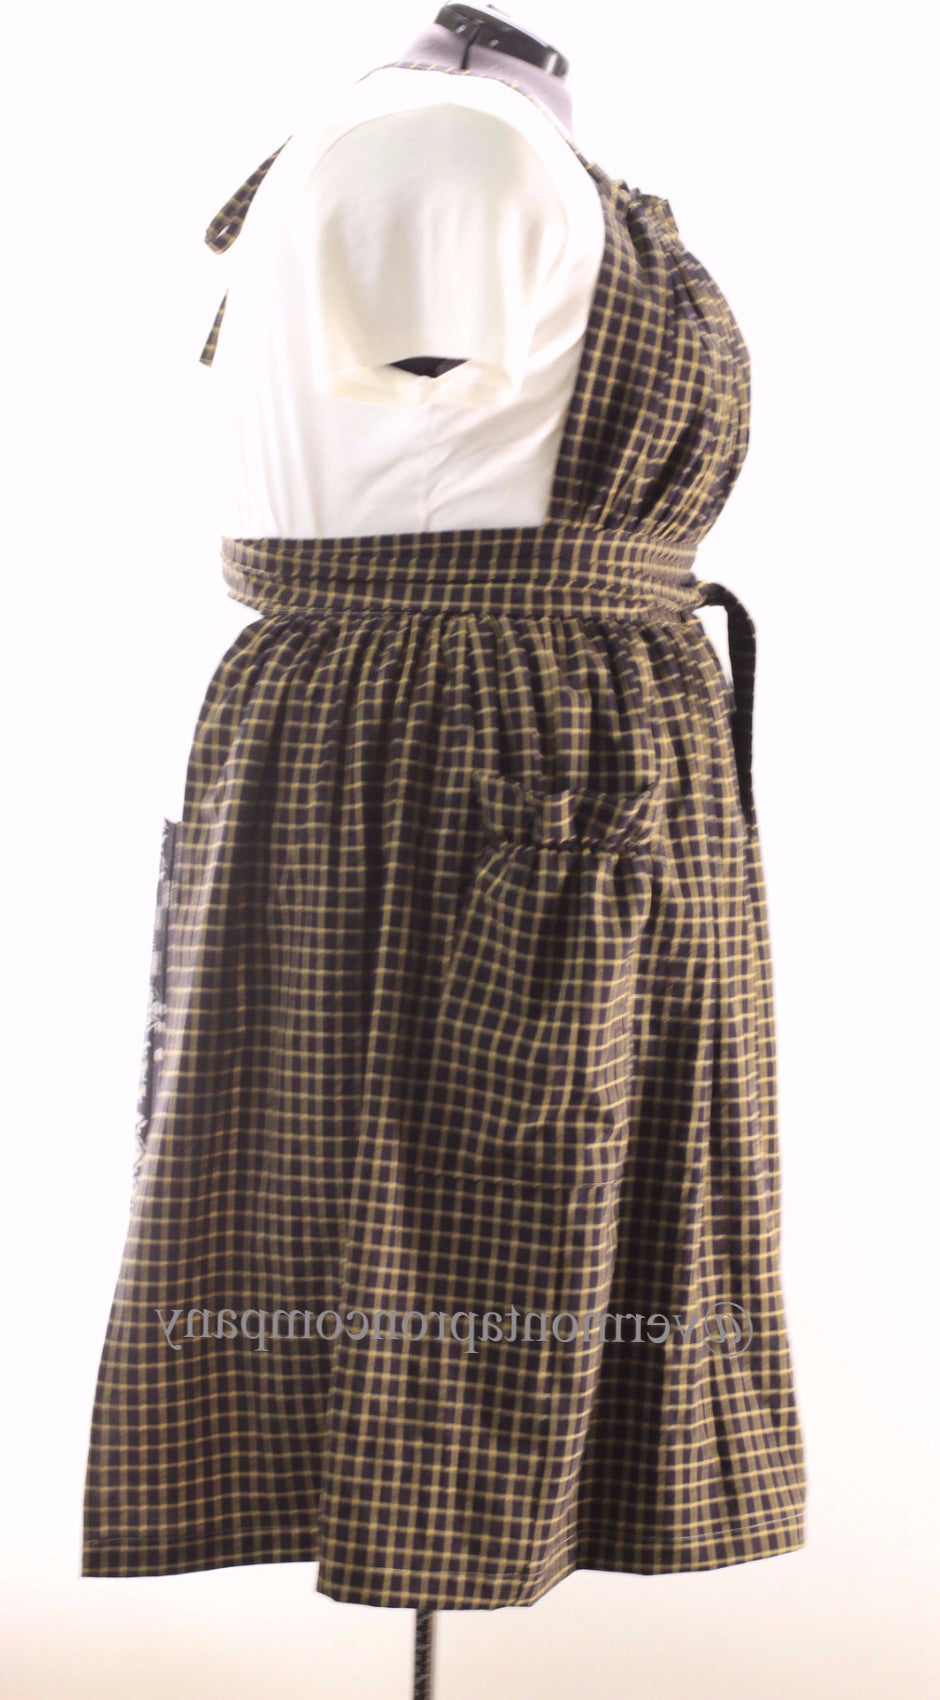 XS-5X  Gathered Bib Apron in Black 100% Cotton Homespun, plus size, side view